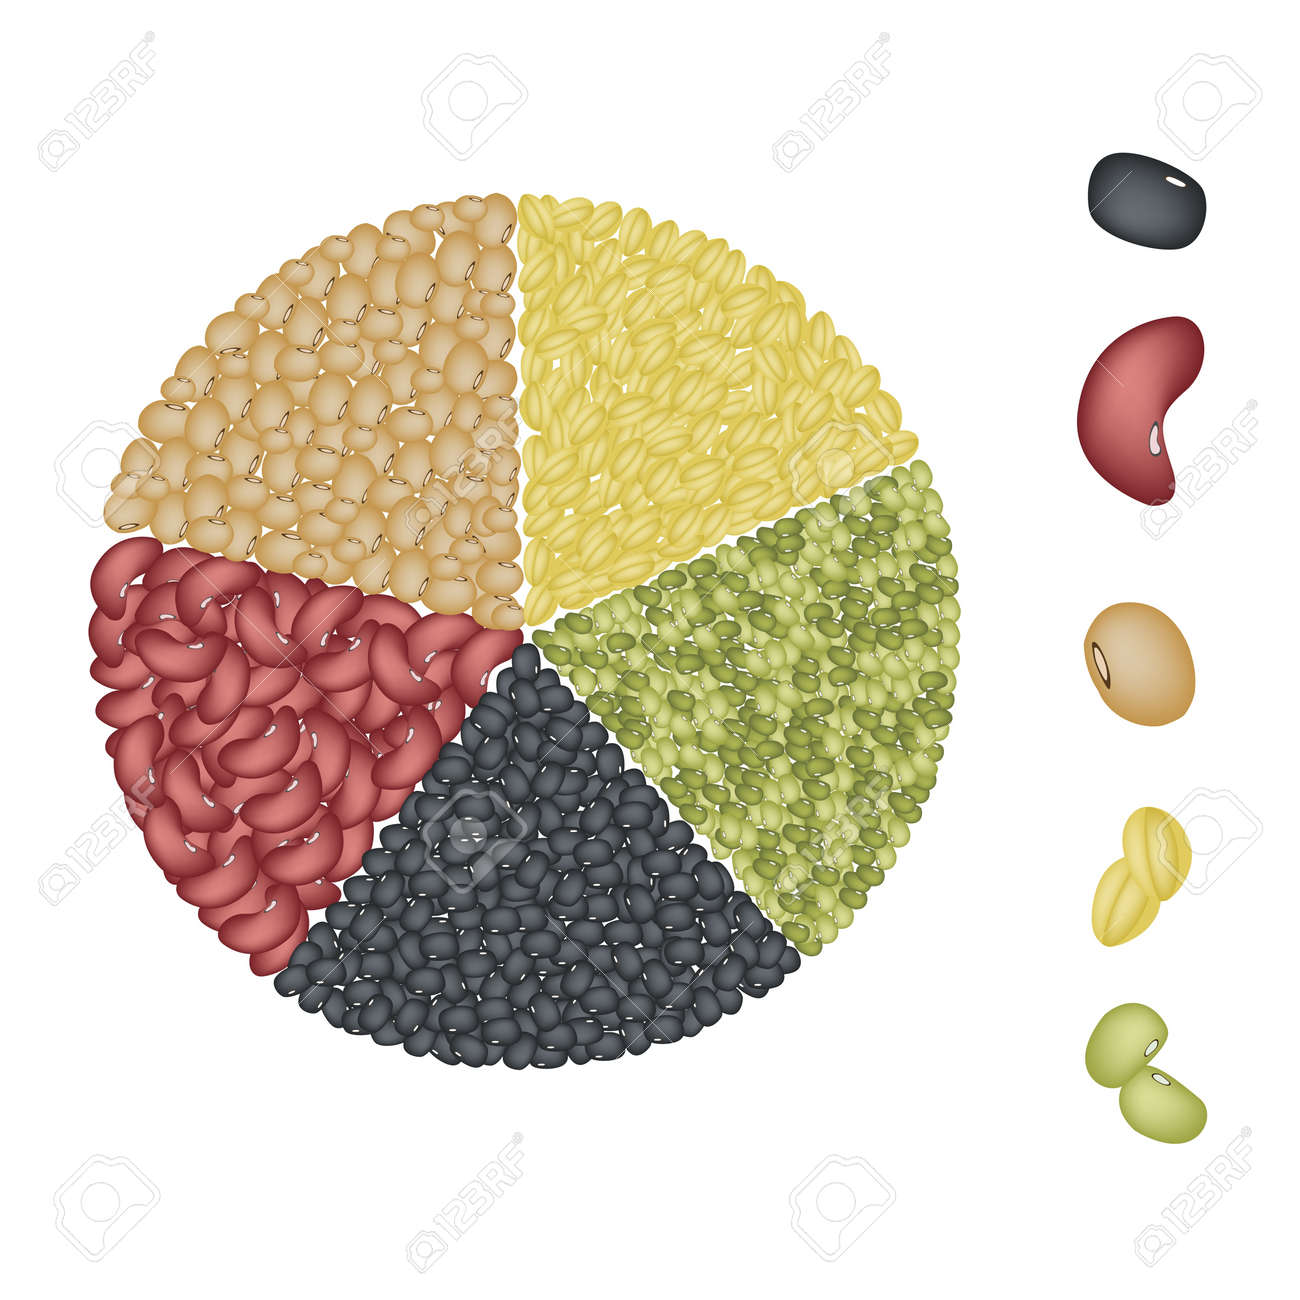 An Illustration Collection of Different Dried Beans, Mung Bean, Kidney Bean, Black Eye Bean, Soy Bean and Yellow Split Peas Forming A Pie Chart - 21826972